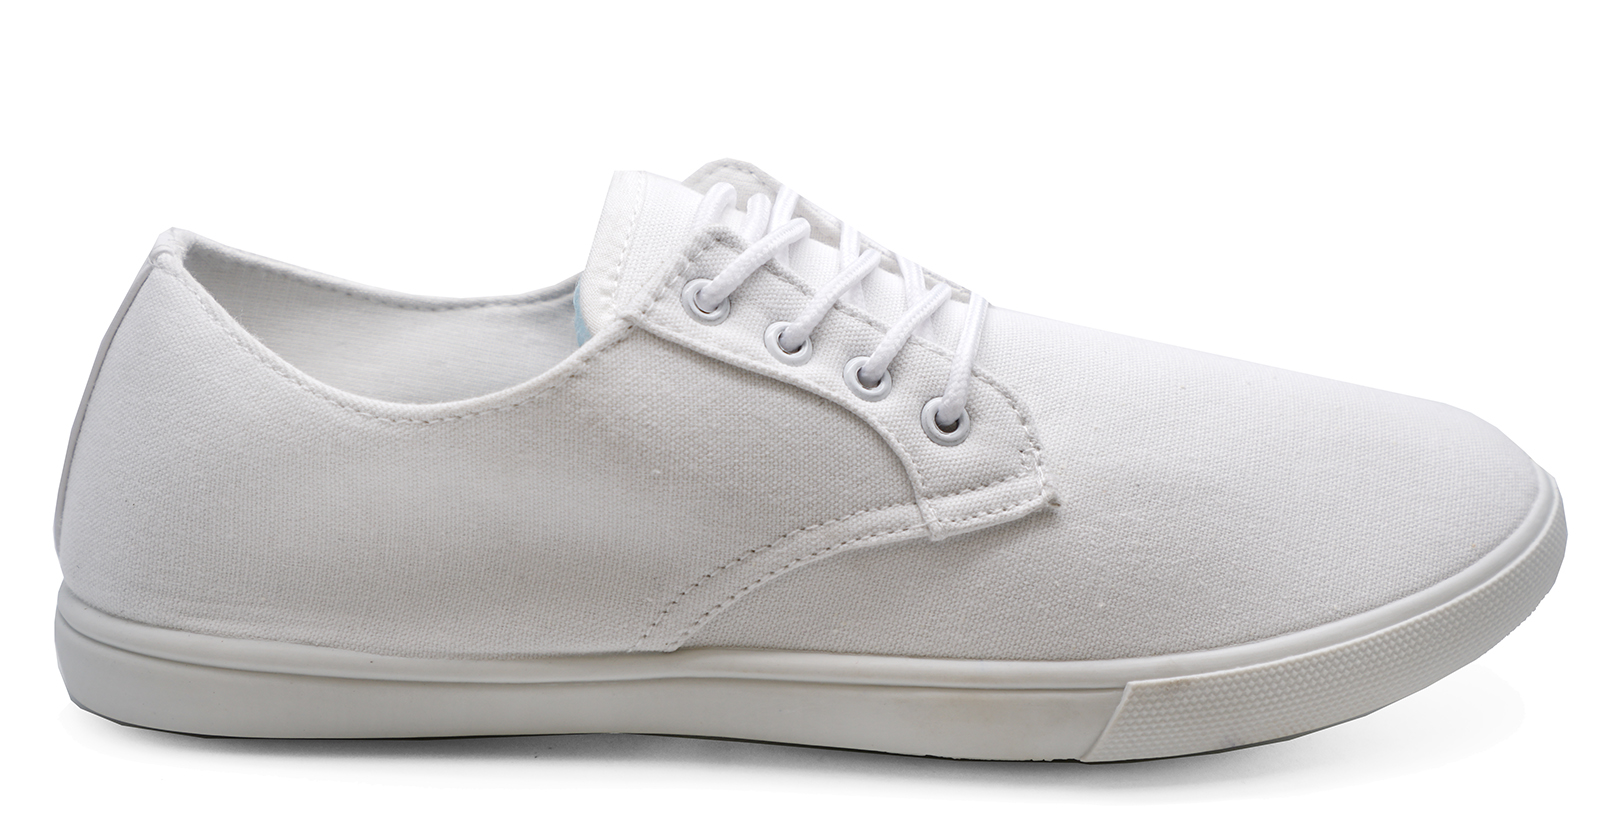 MENS-LACE-UP-WHITE-CANVAS-FLAT-TRAINER-PLIMSOLL-PUMPS-CASUAL-SHOES-SIZES-6-12 thumbnail 24